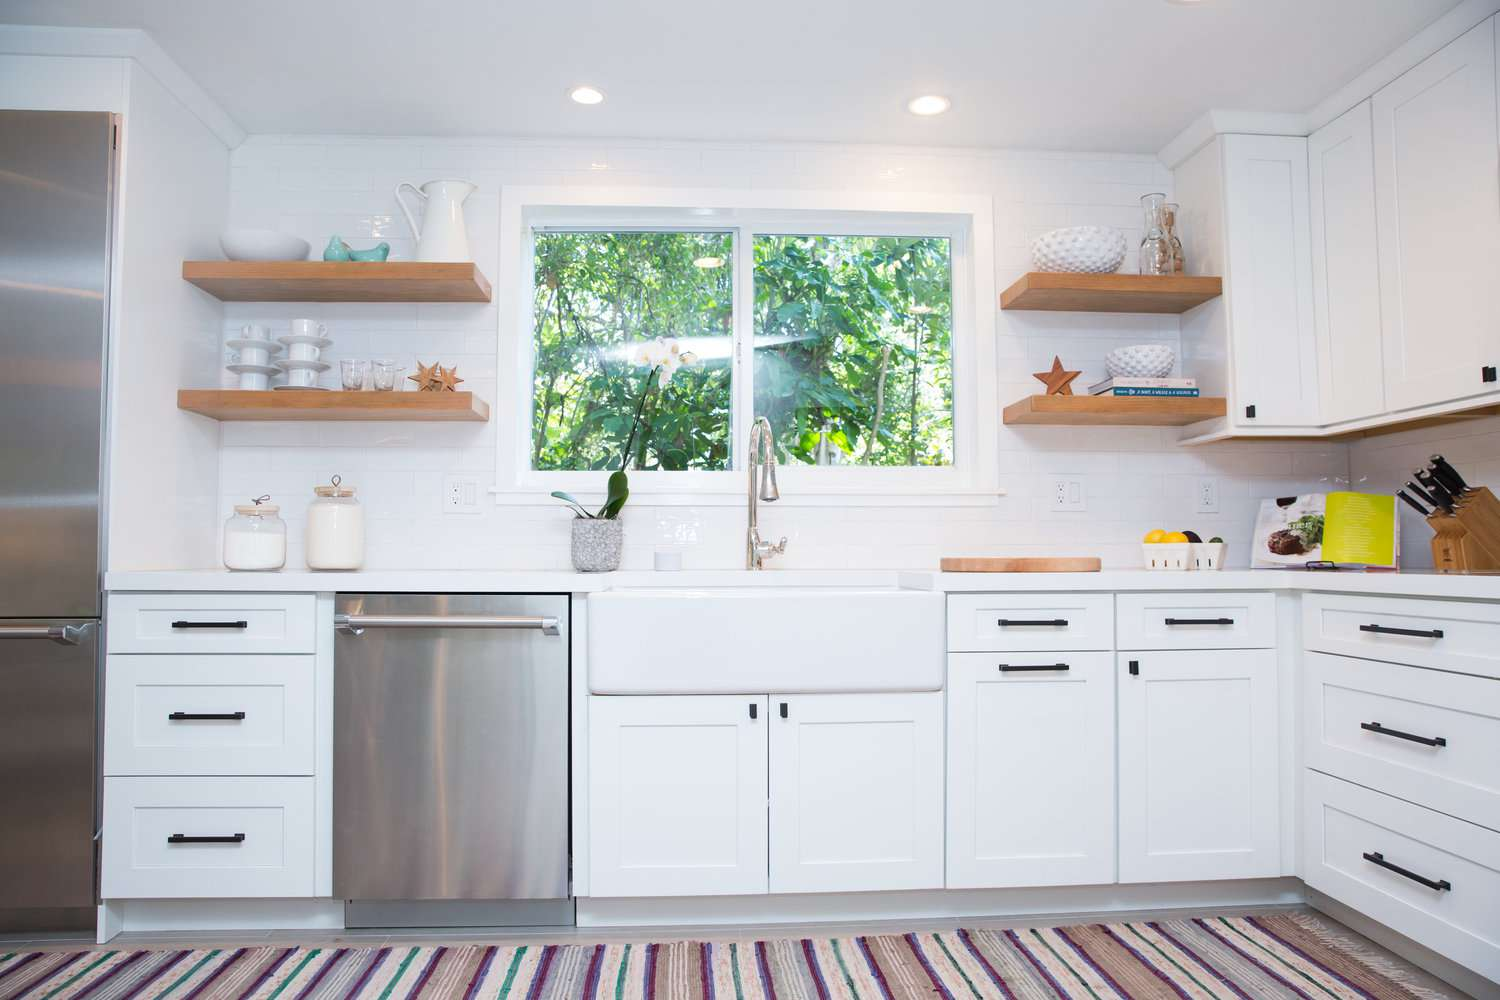 White kitchen with open shelving and stainless steel dishwasher.